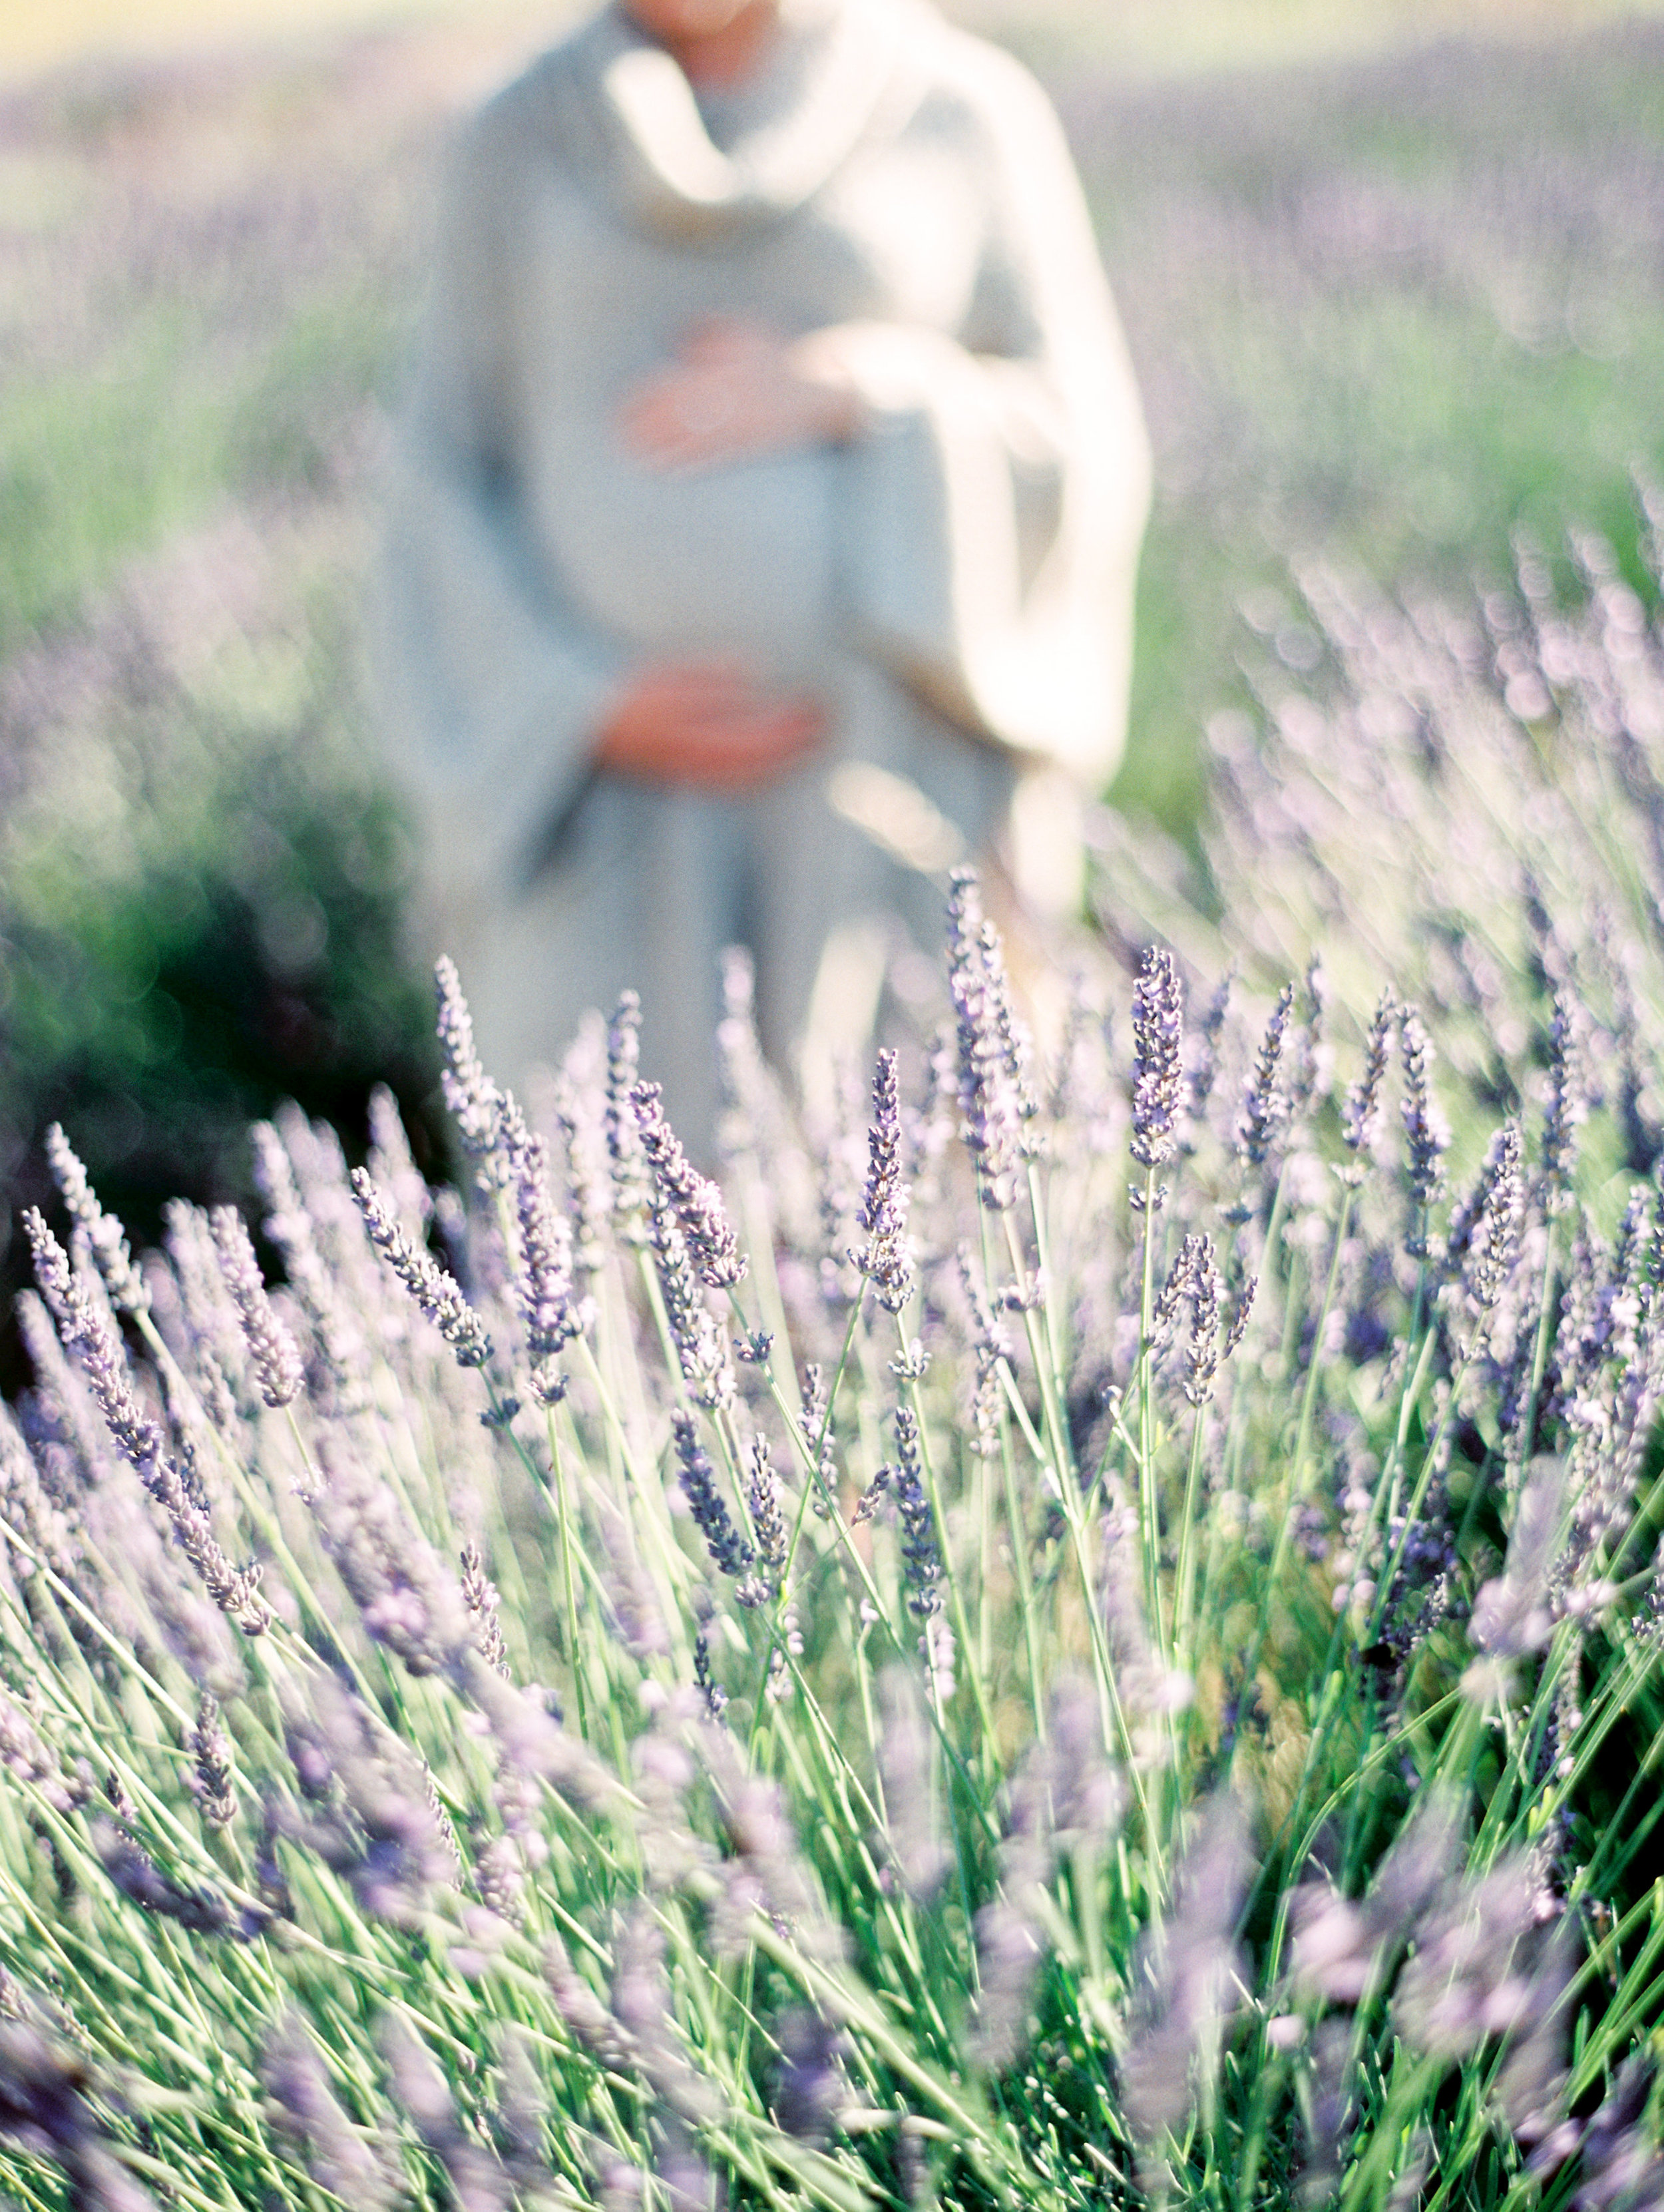 lavender-field-matnernity-photography-22.jpg